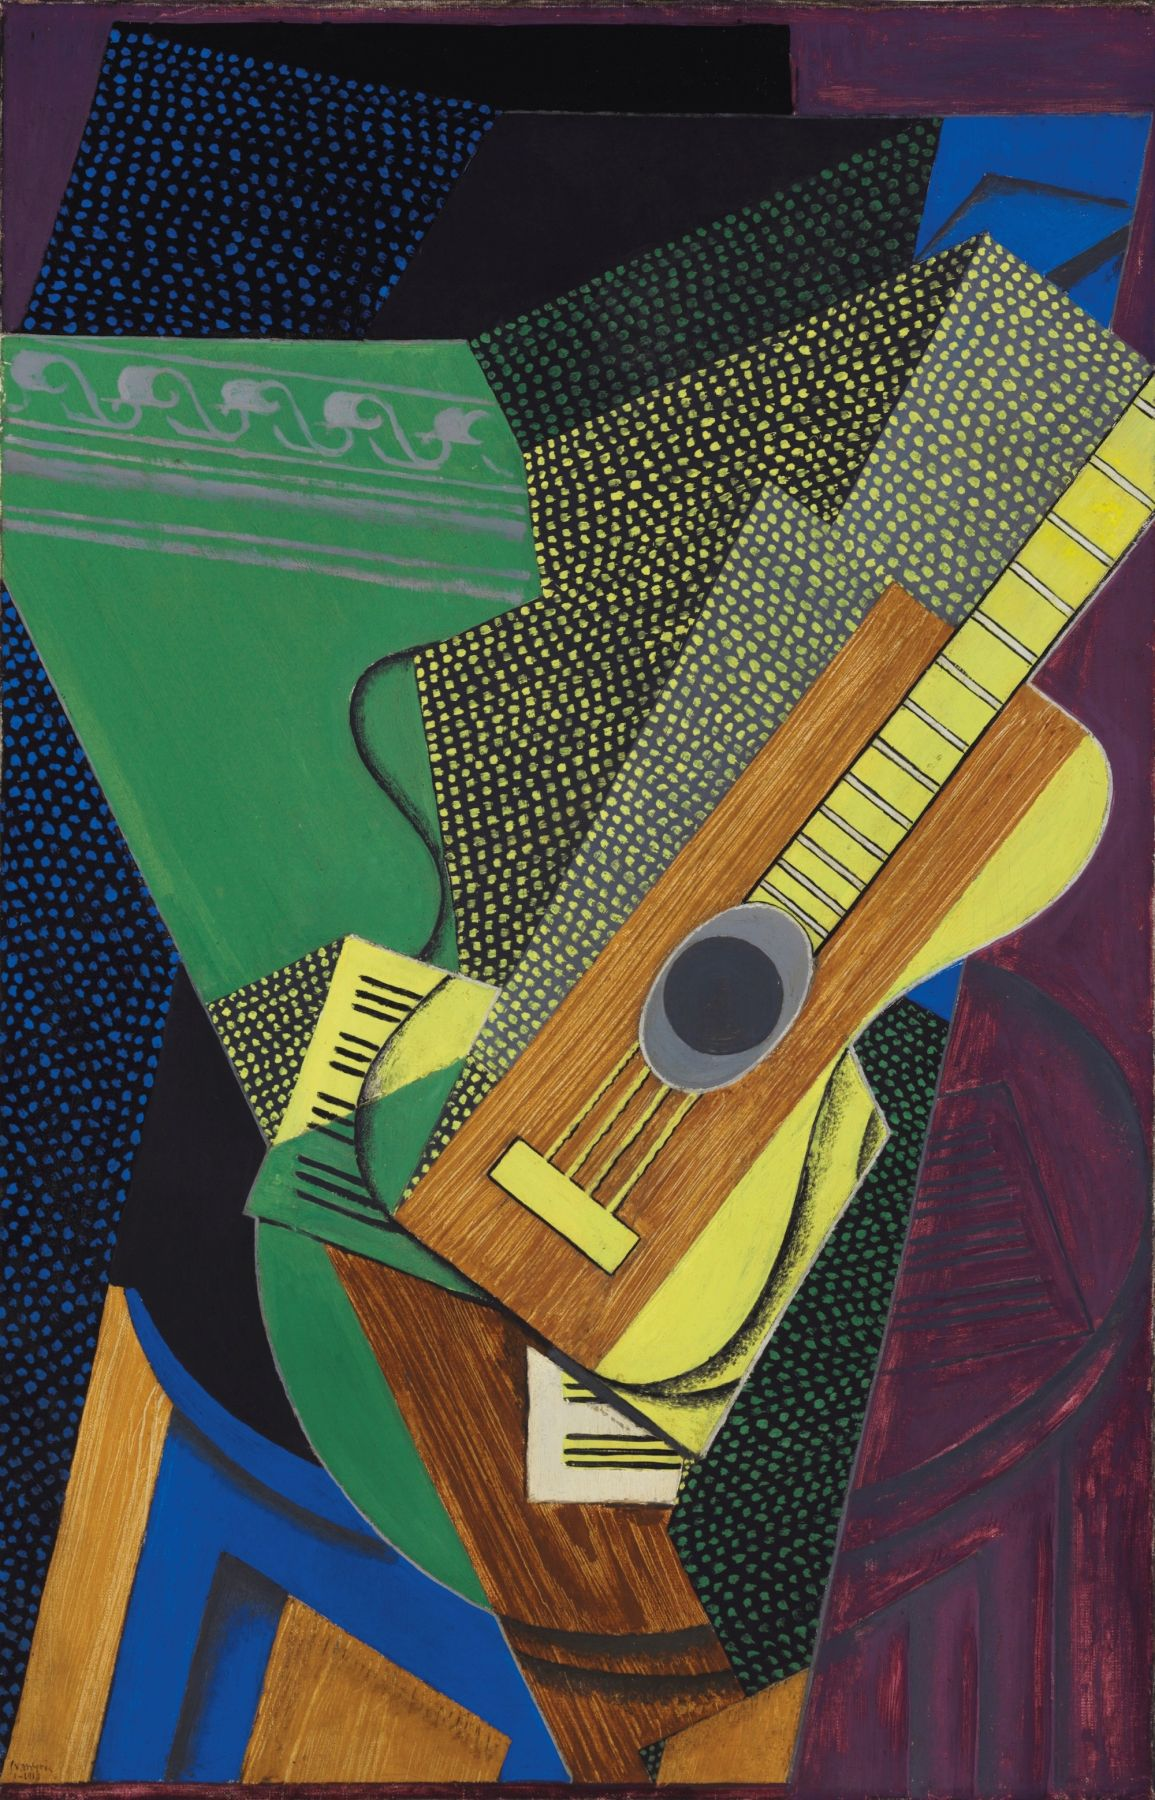 Juan Gris, Guitare sur une table, 1916 Oil on canvas 92.1 x 59.4 cm. (36 1/4 x 23 3/8 in.) This painting depicts a guitar resting on a table with tilted and angled translucid color planes in the background. The guitar seems to be in a darkened room with a shaft of light as if streaming through an open door.. More than a pretext for a still life the artists transfigured this instrument into the pictorial equivalent of a visually fully composed concerto.